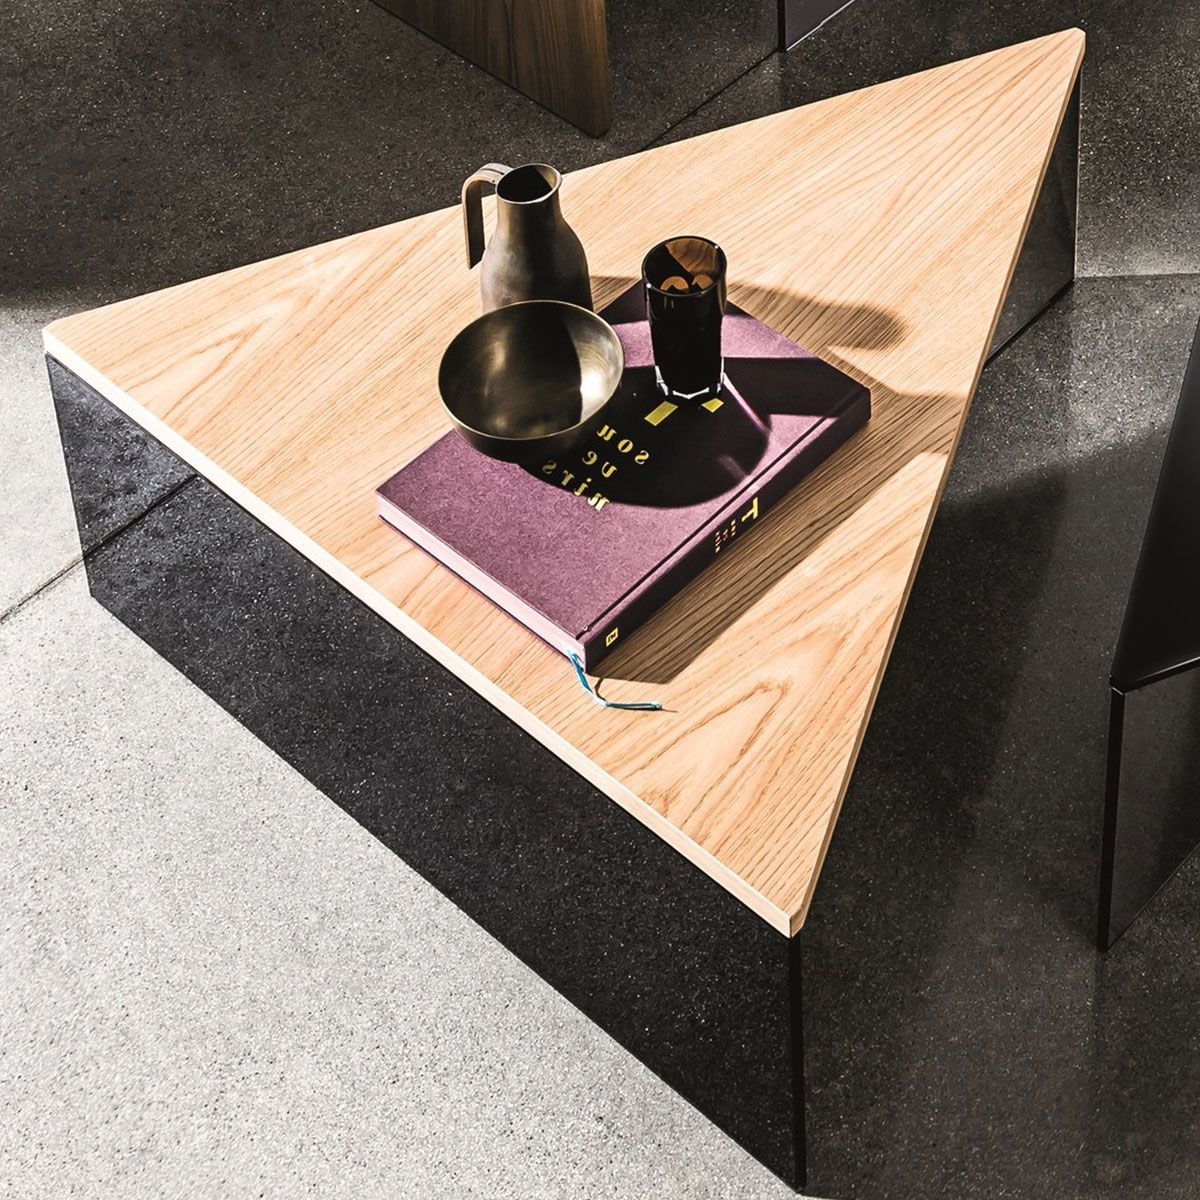 30+ Triangle glass and wood coffee table ideas in 2021